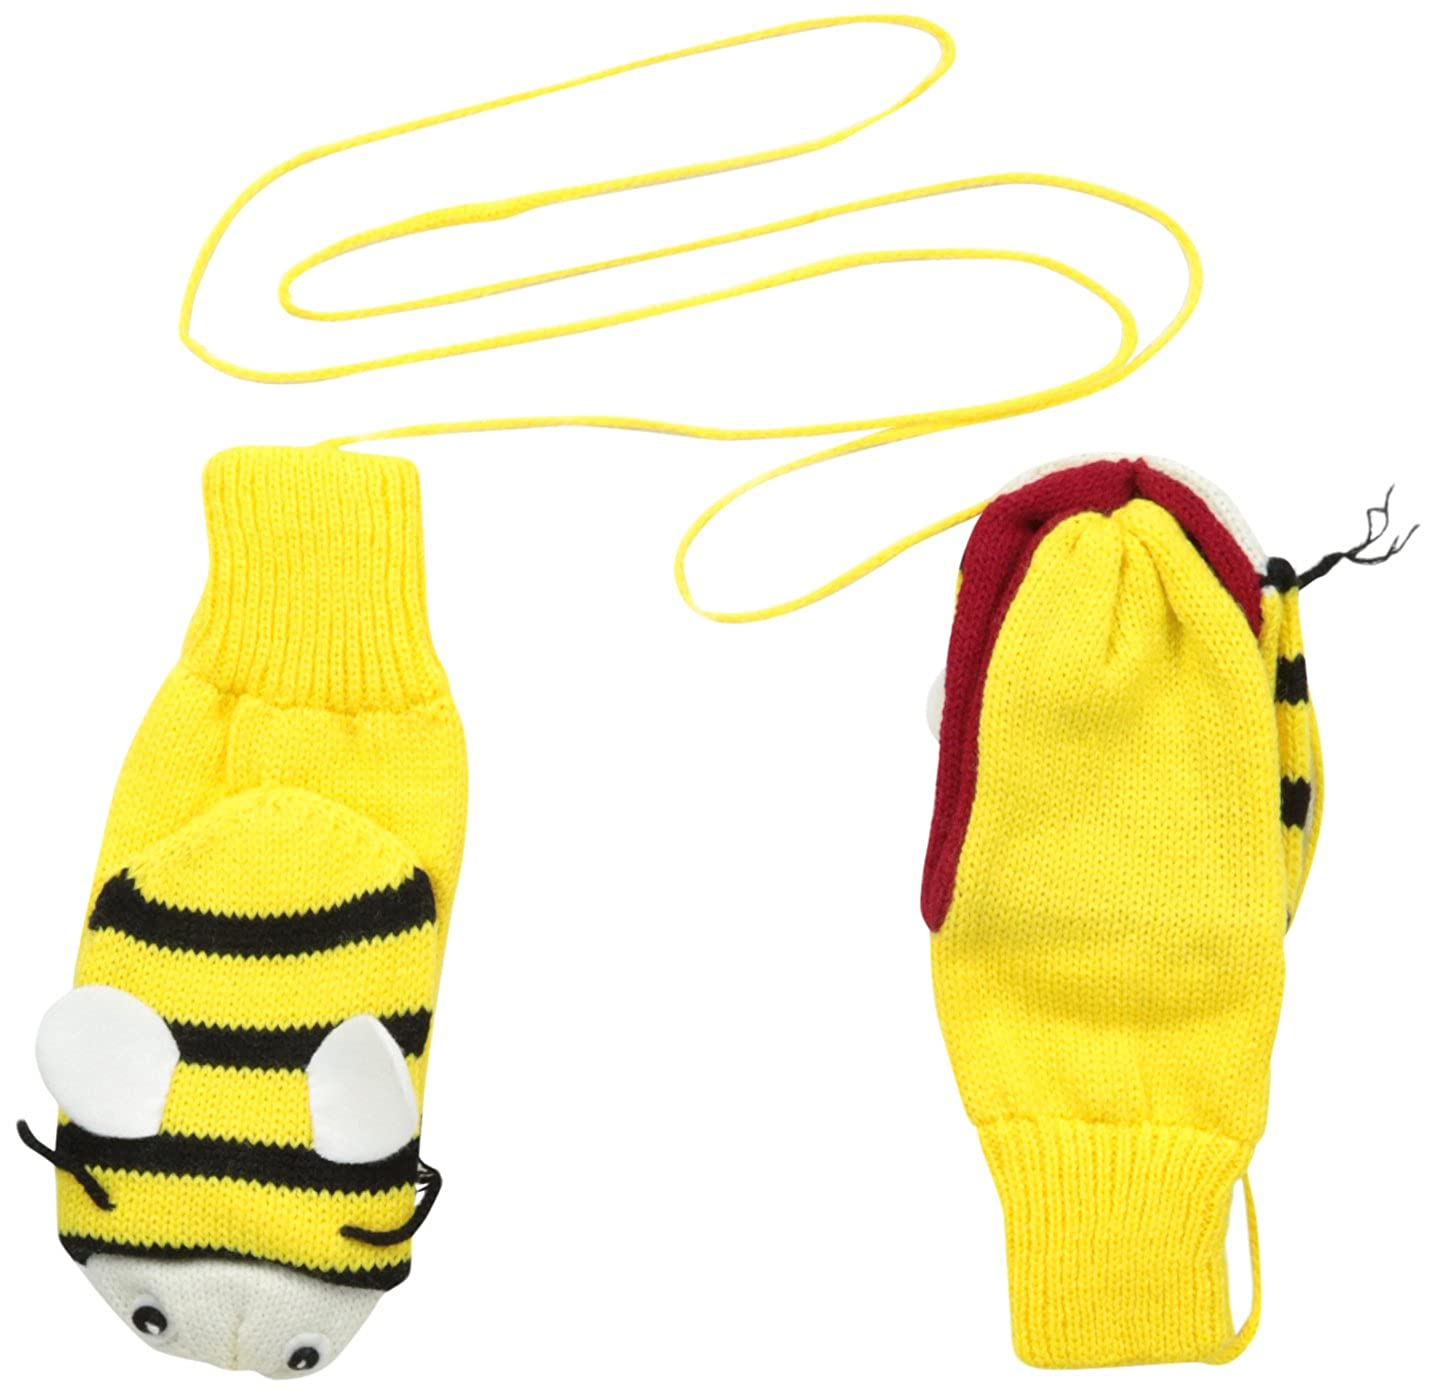 Kidorable Yellow Bee Soft Acrylic Knit Mittens With Fun Wings and Antennae 501226